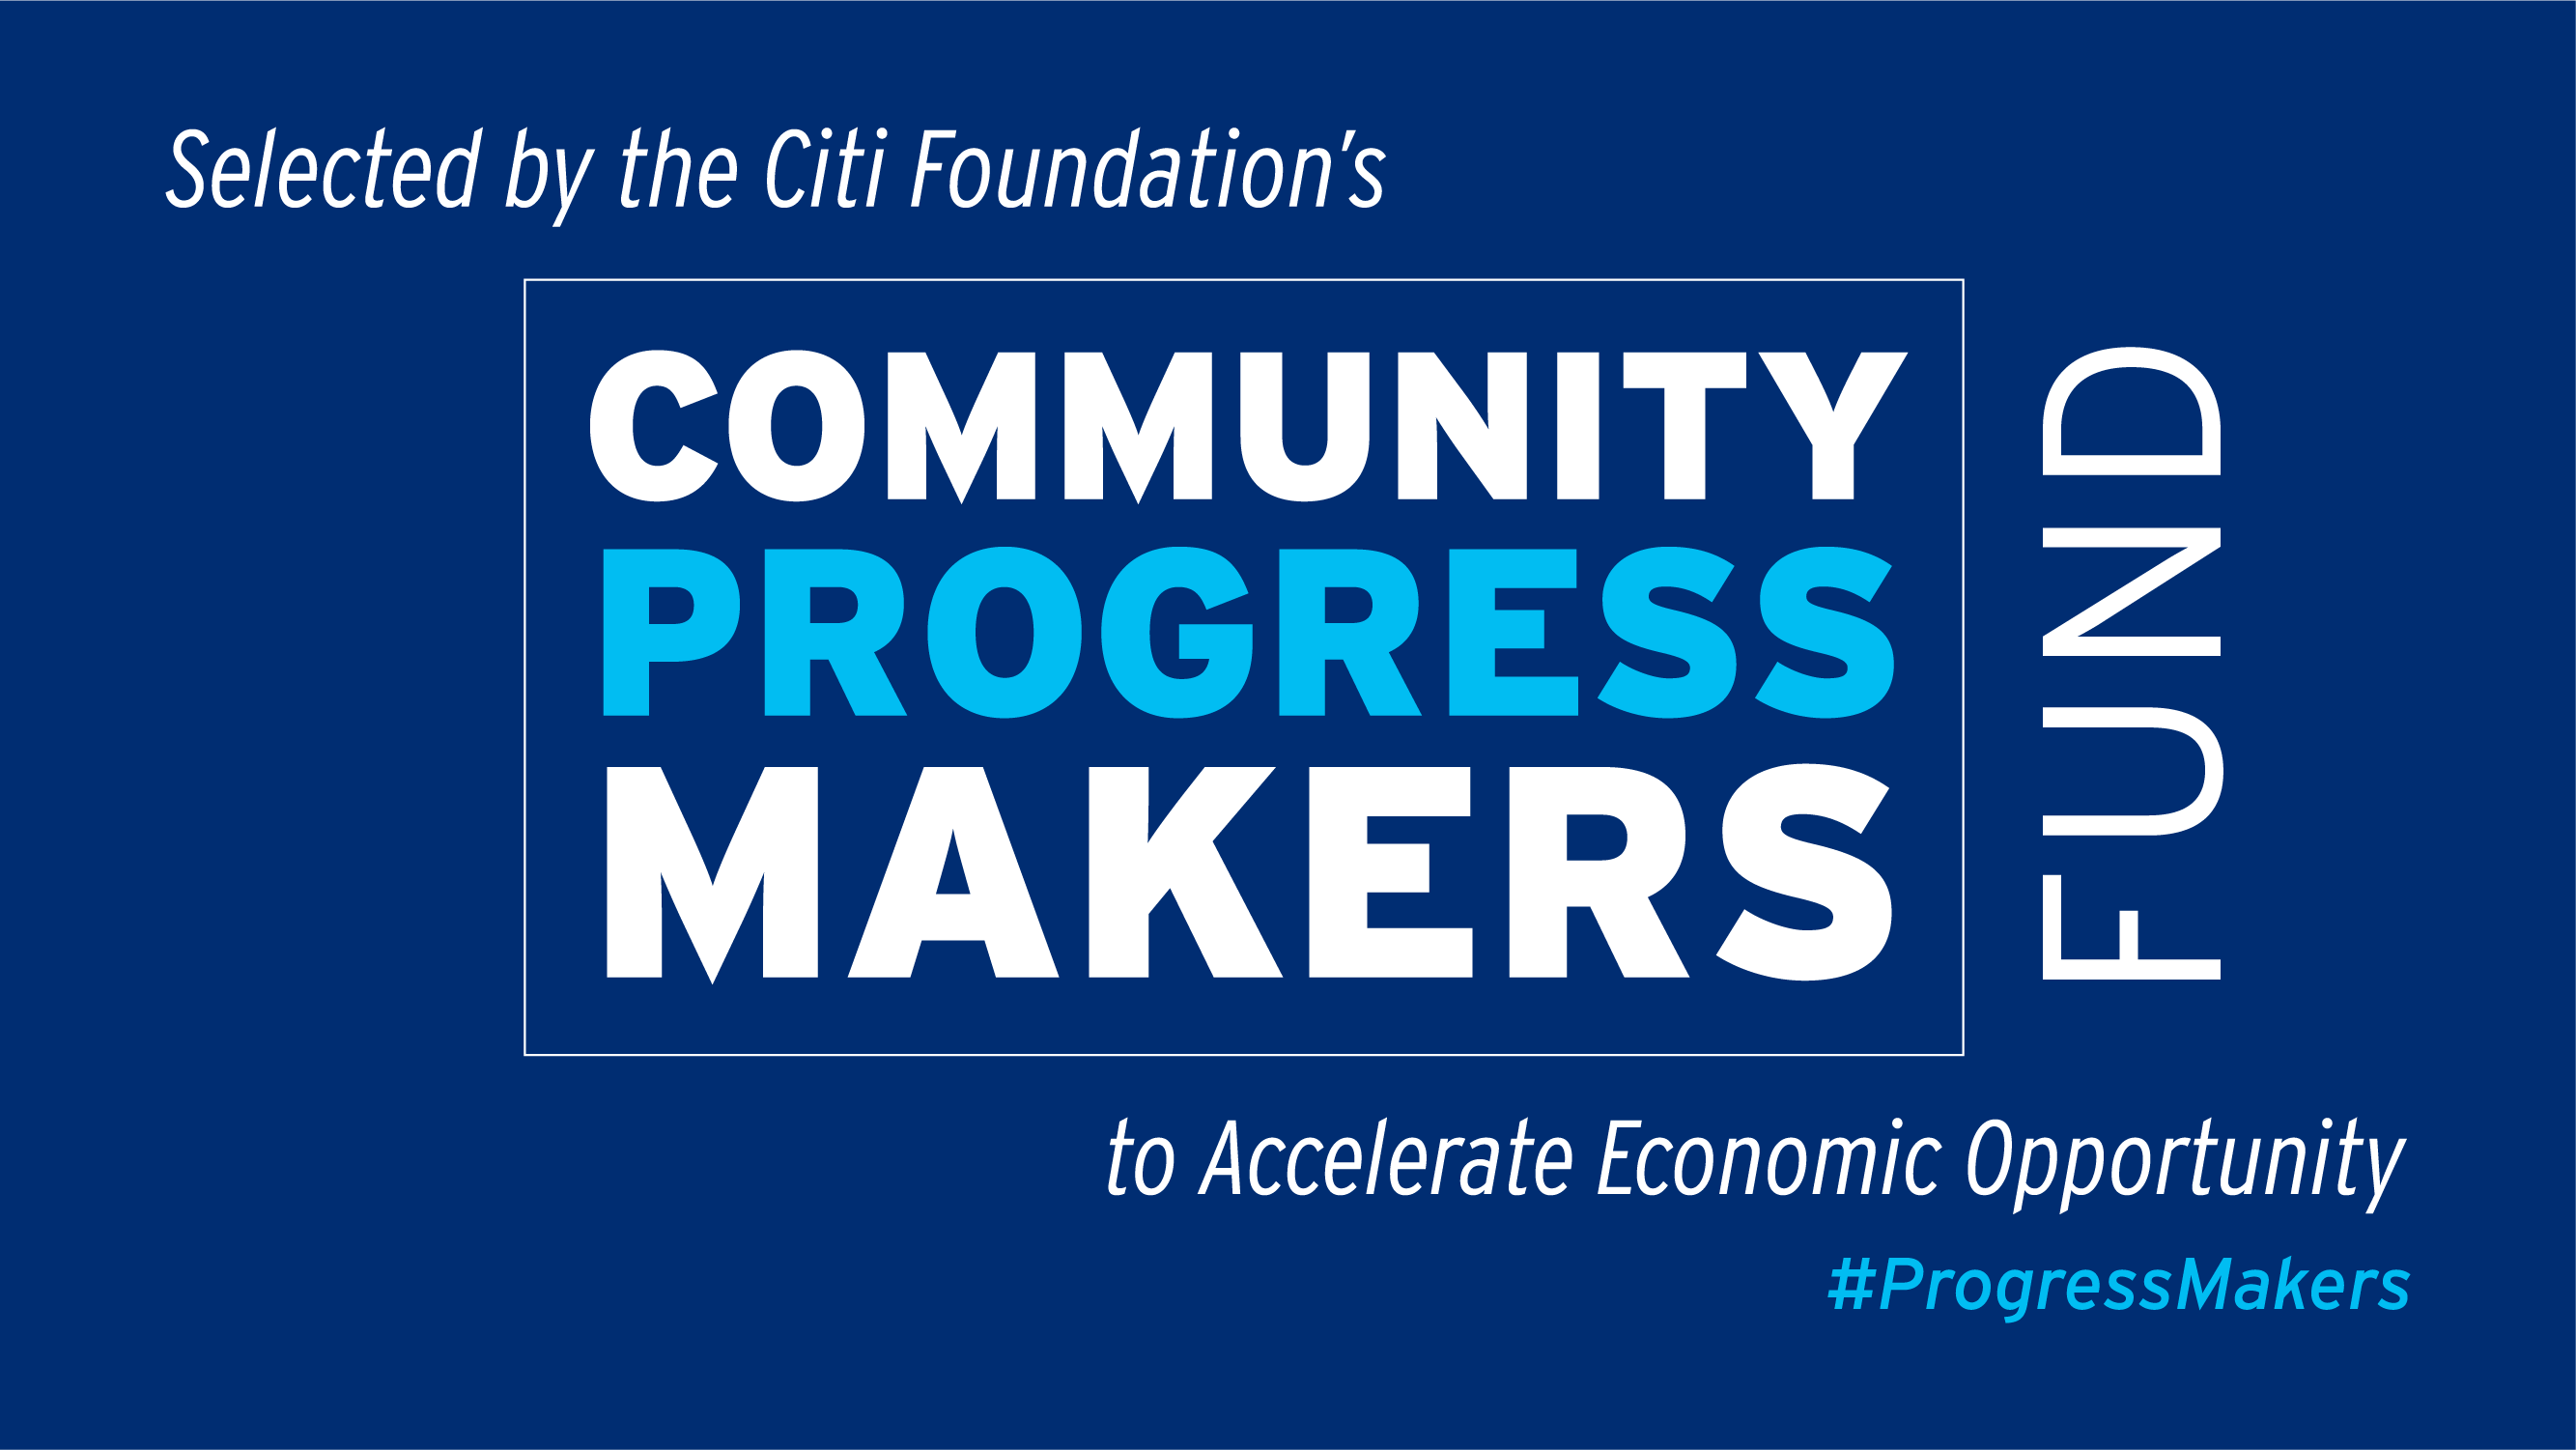 Propel L.A. Receives $500,000 Grant from Citi Foundation